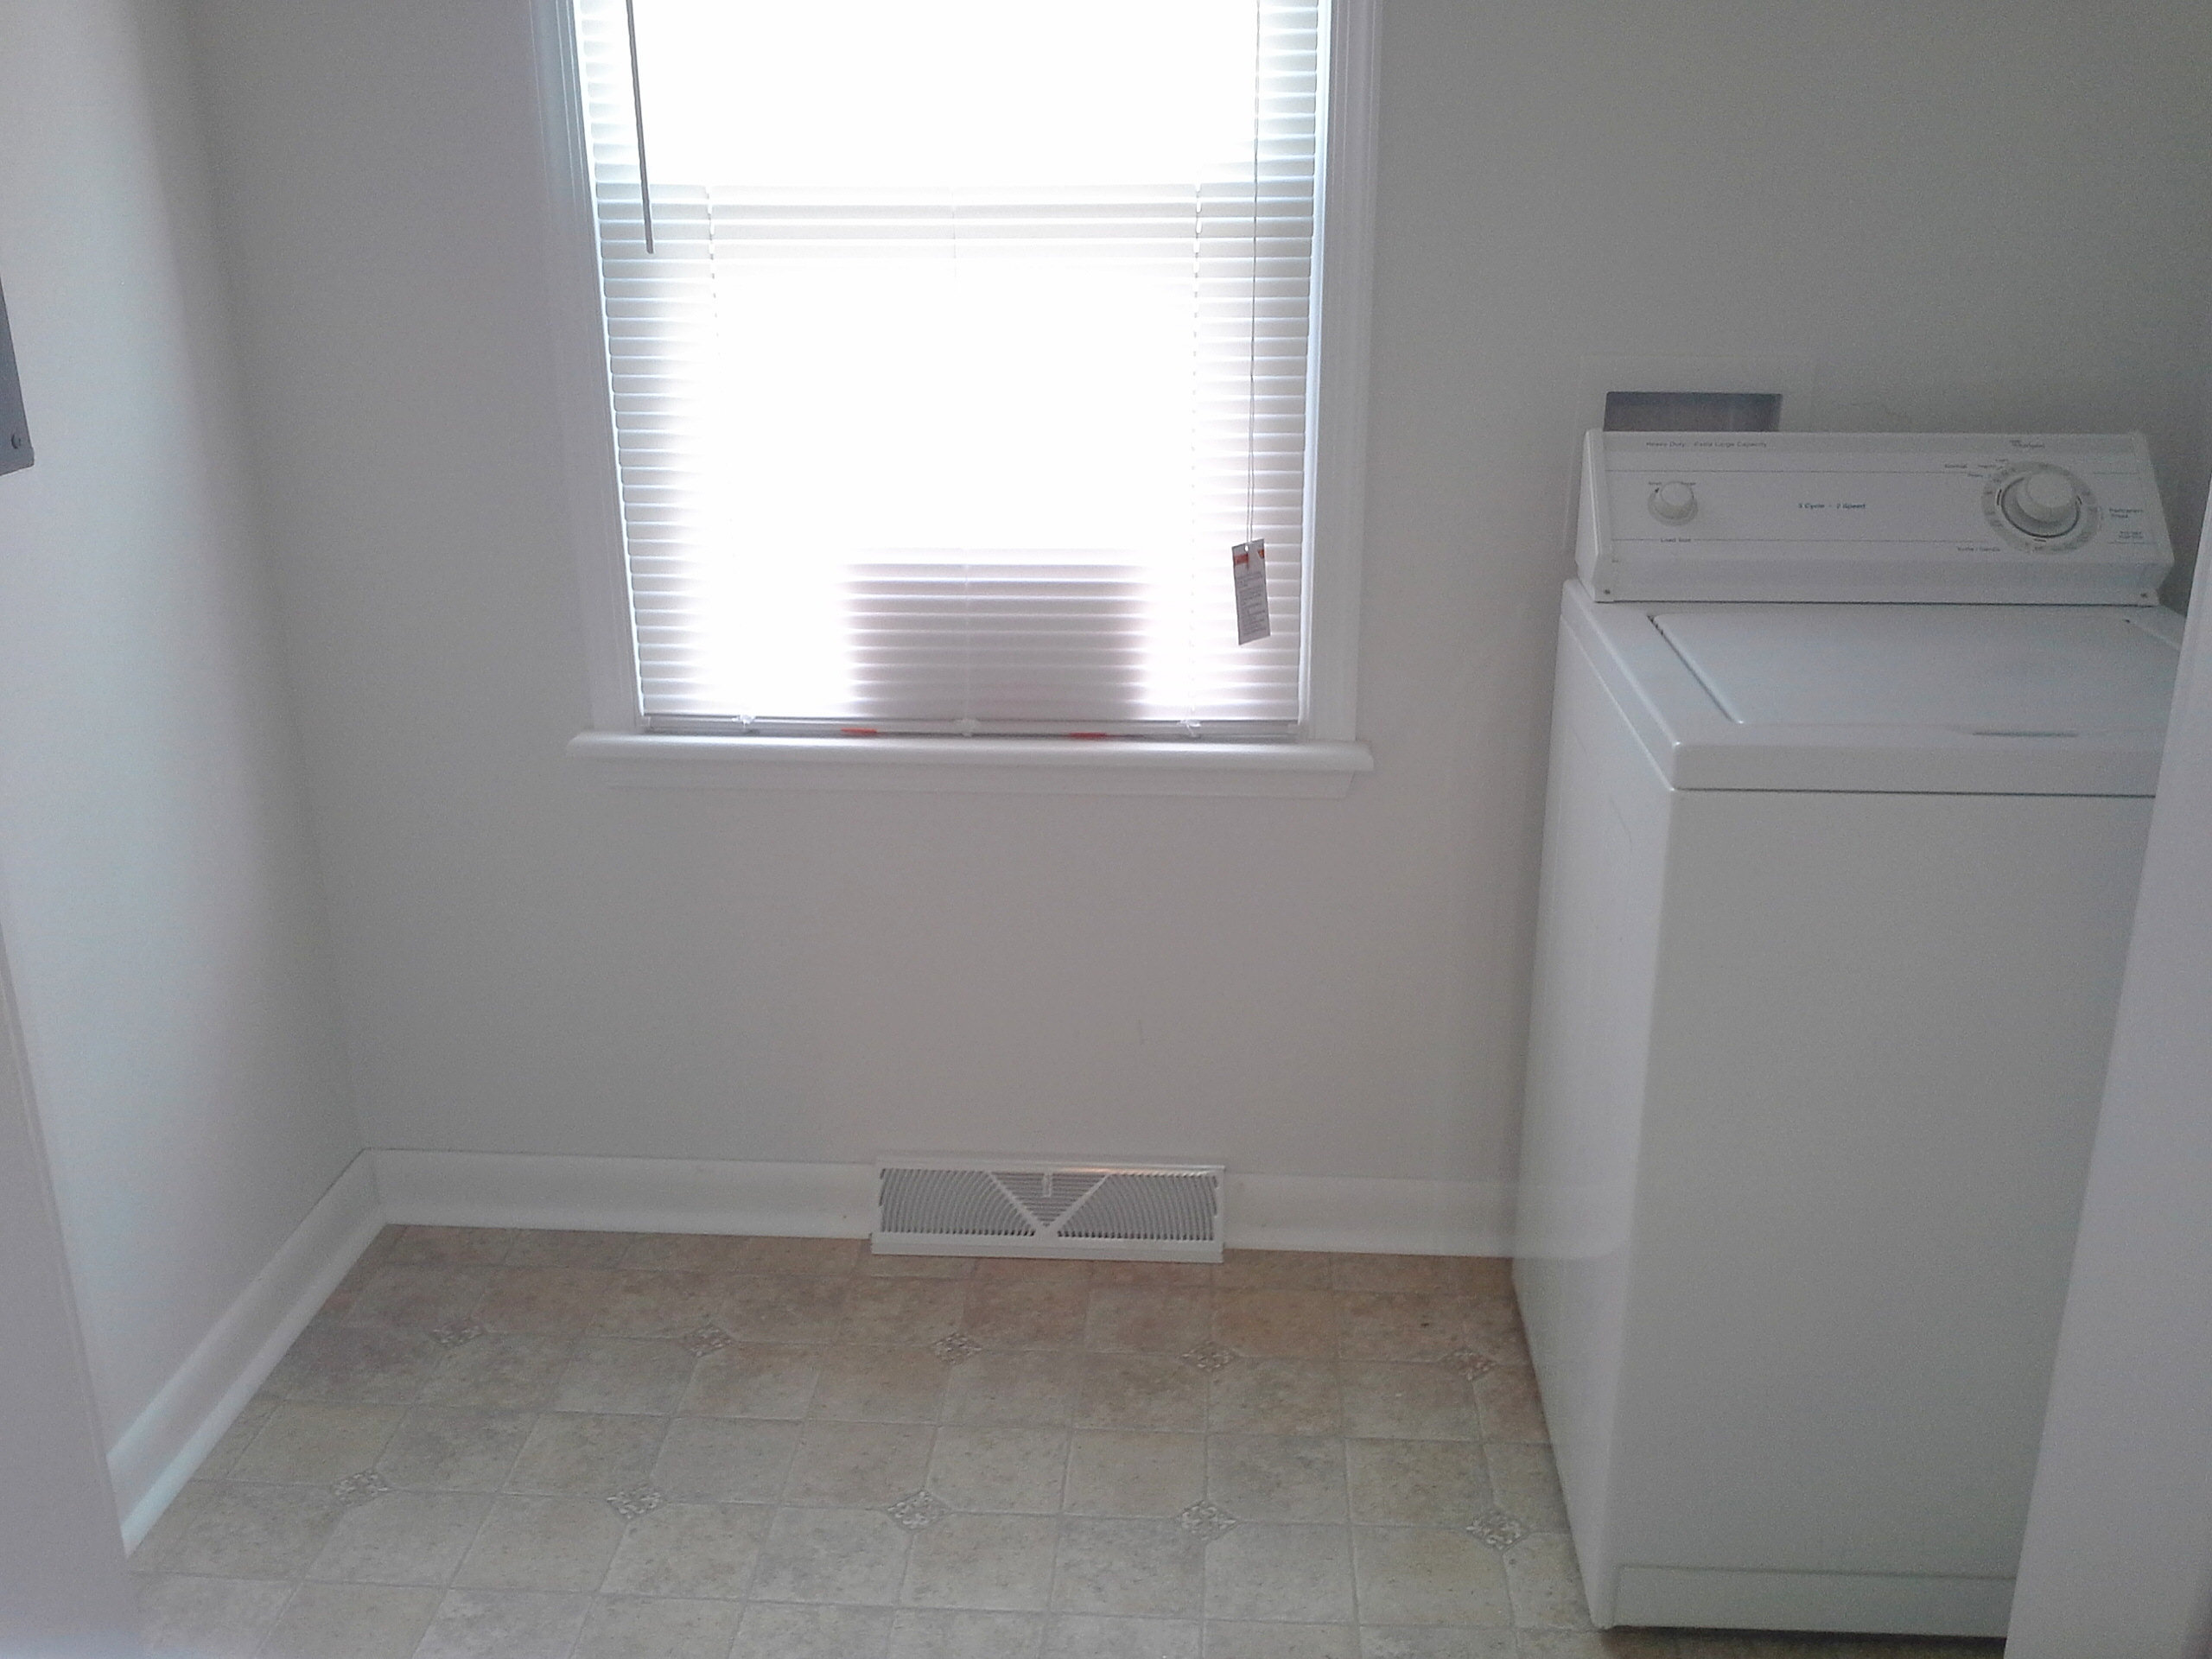 Ingram & Associates, Property Management | Laundry Room